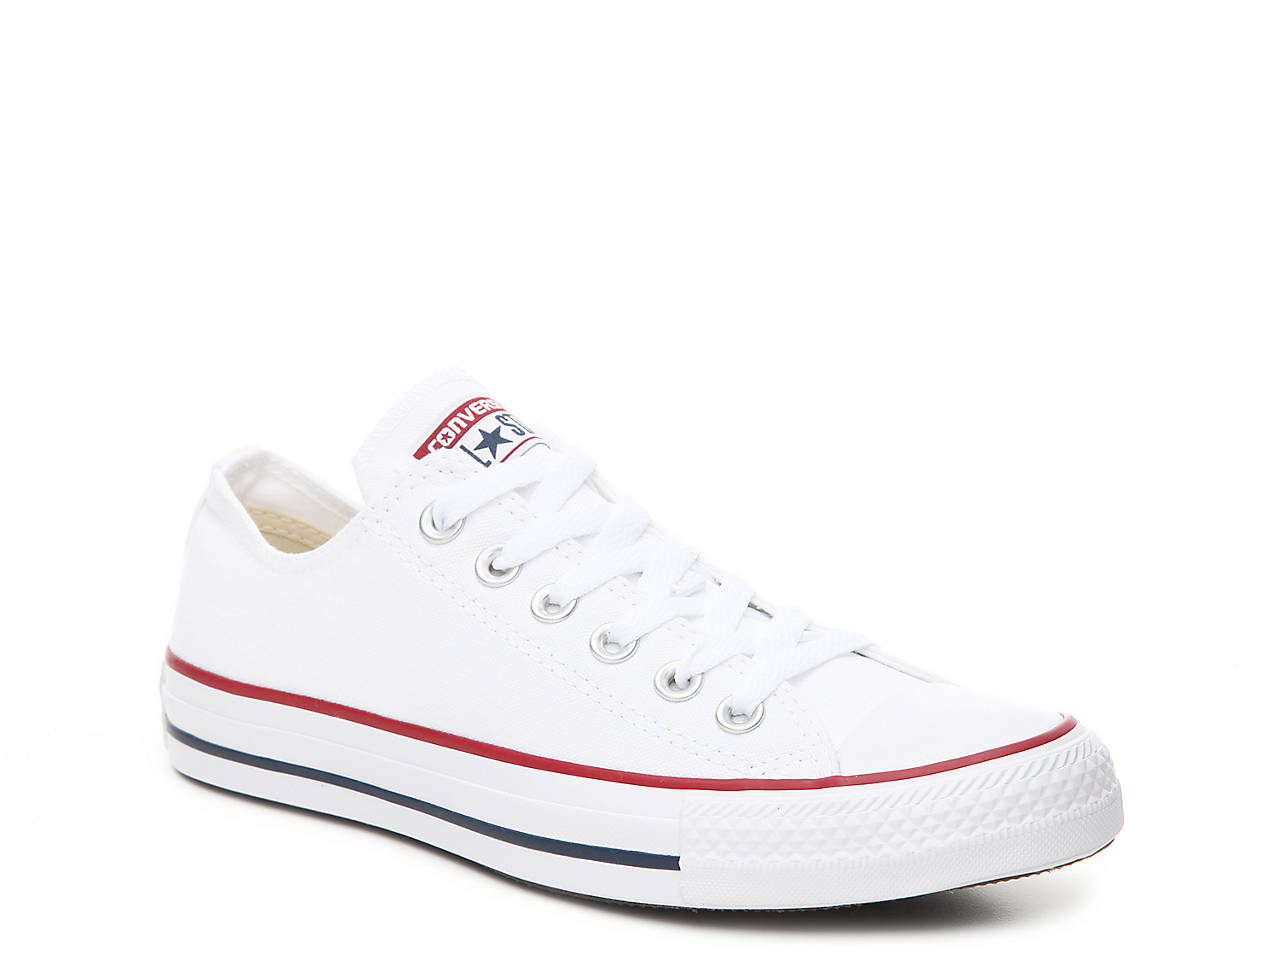 Converse Chuck Taylor All Star Sneaker - Women s Women s Shoes  f63e1f0d78630